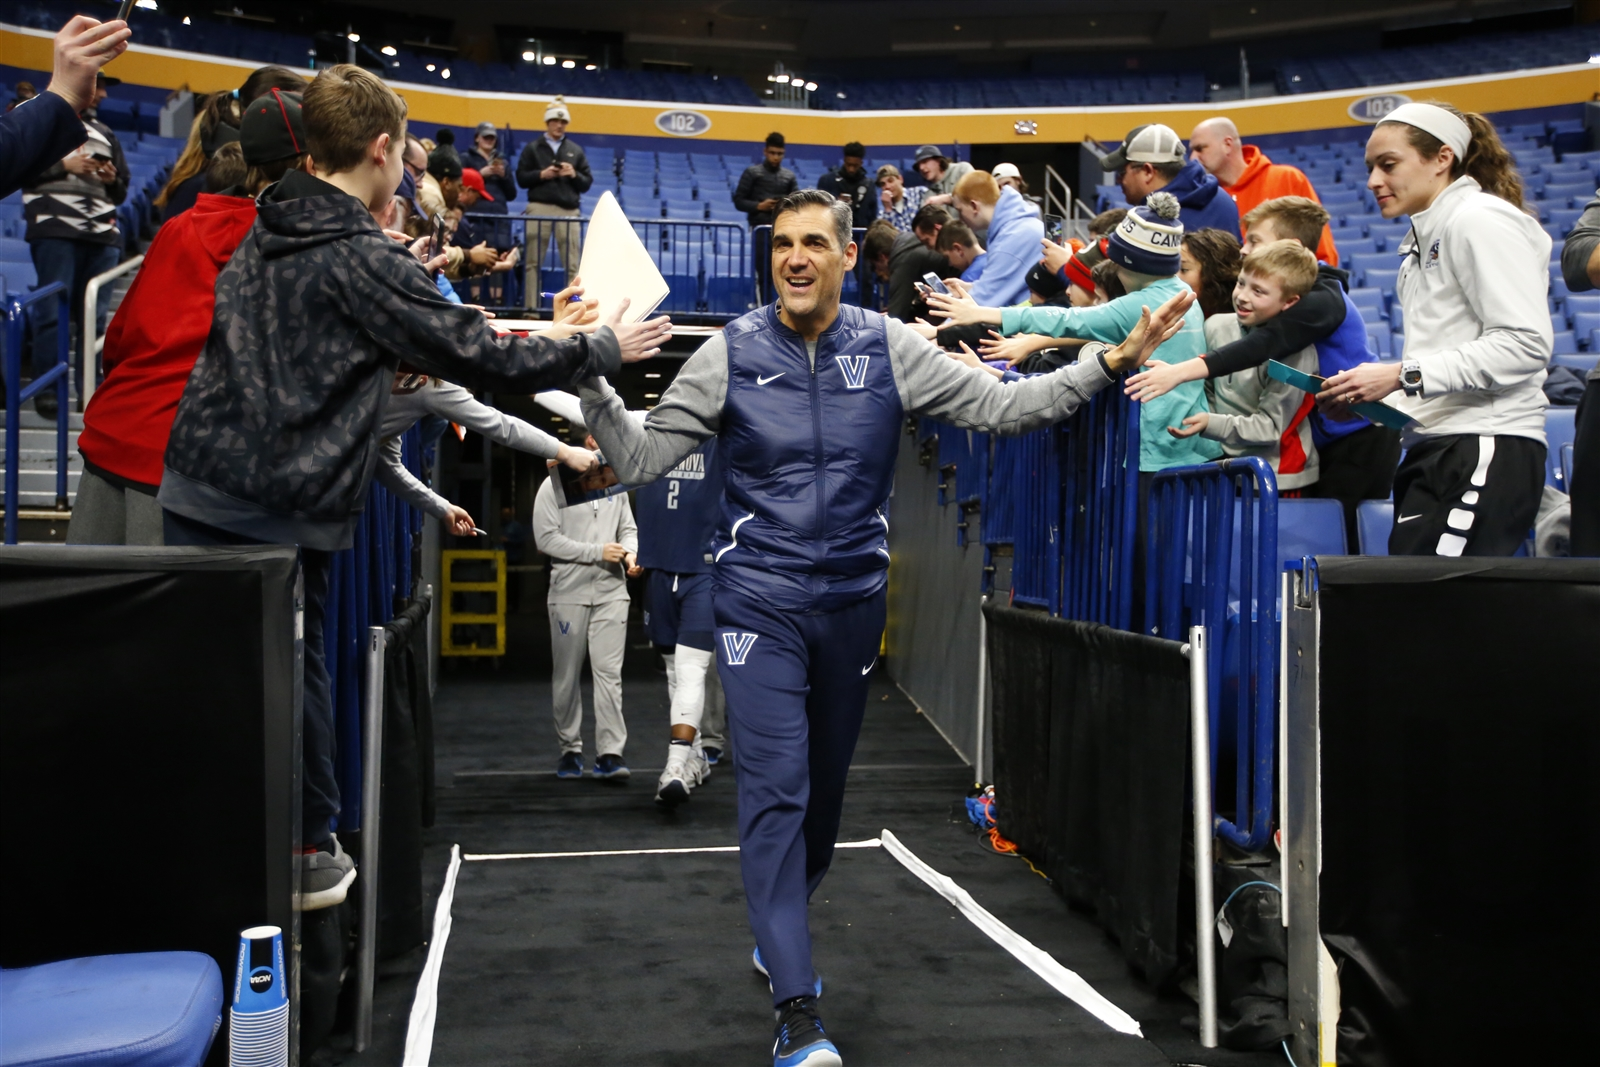 Jay Wright heads to the KeyBank Center court for practice with his Villanova Wildcats. (Harry Scull Jr./Buffalo News)